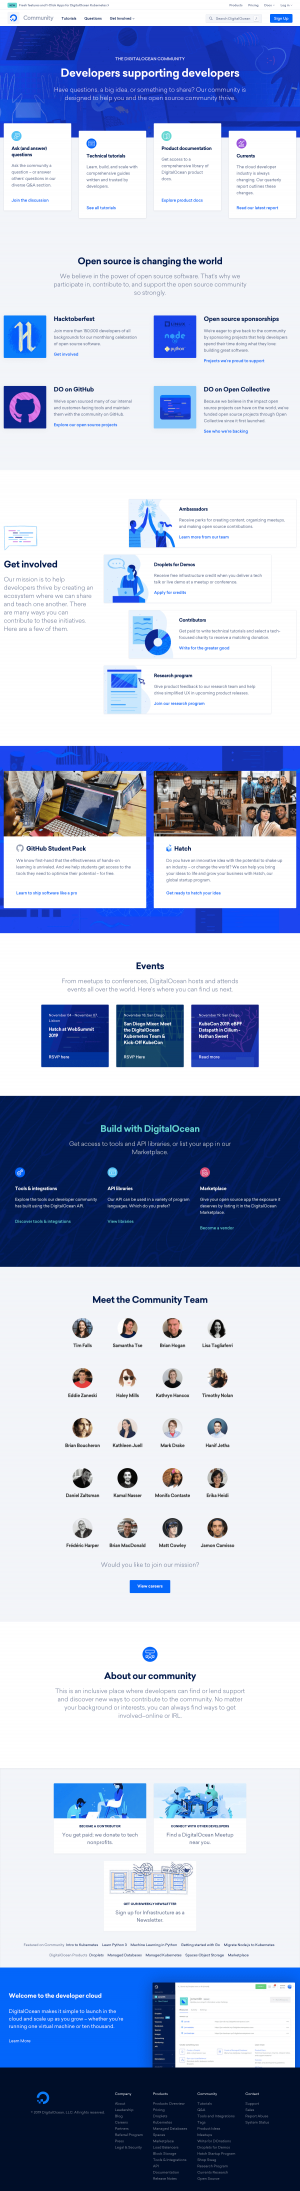 DigitalOcean - Support page